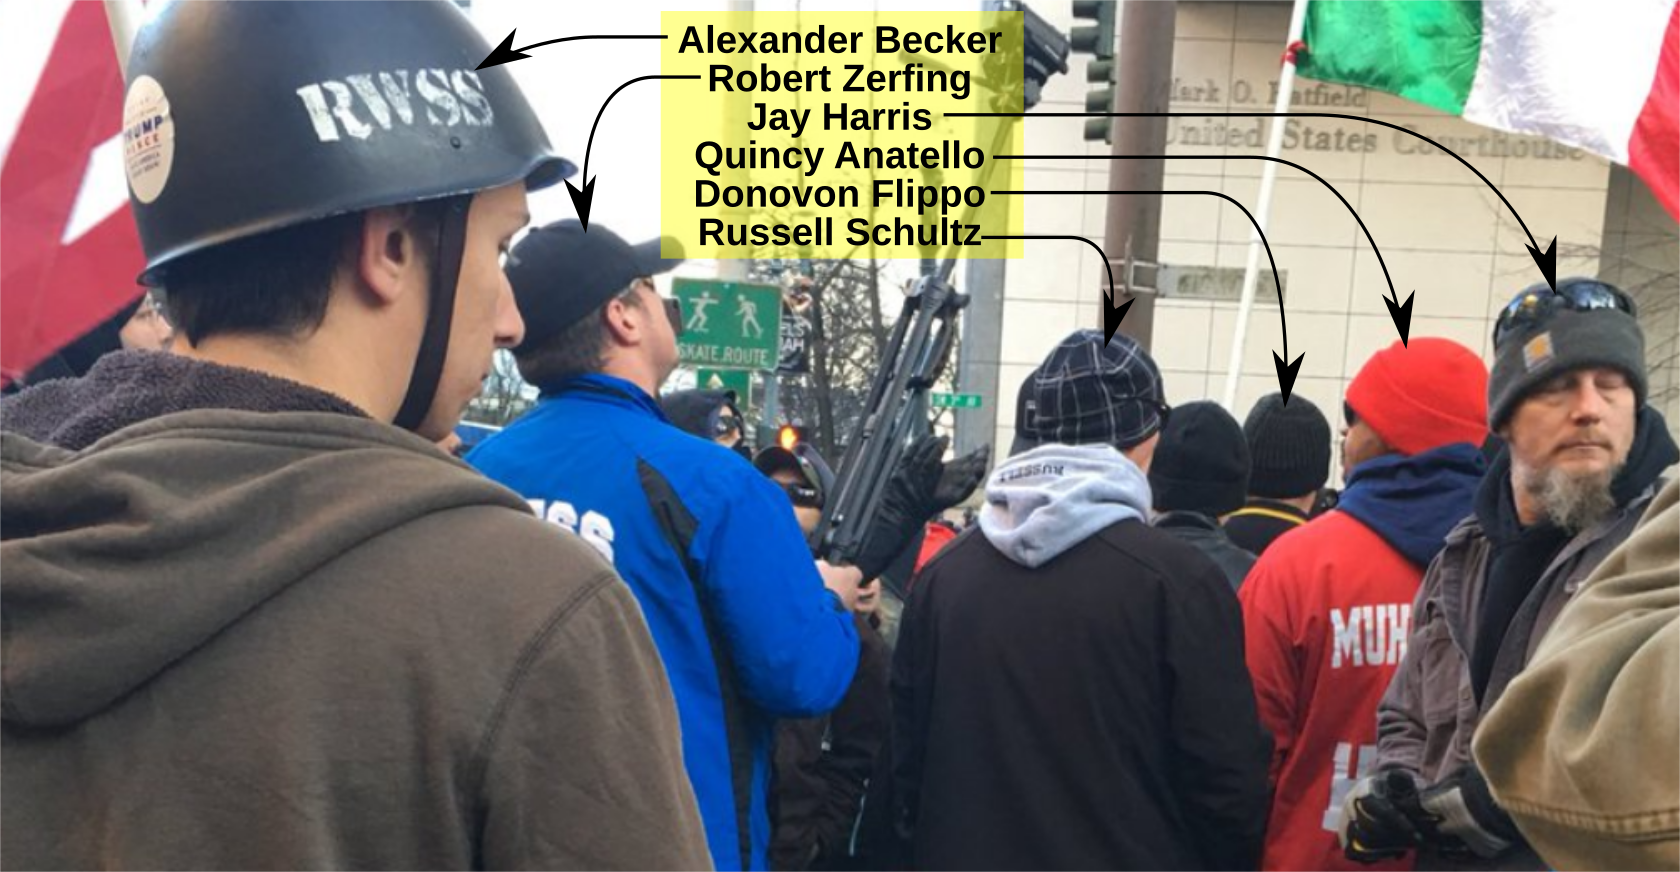 Quincy Anatello with neo-Nazi Alex Becker